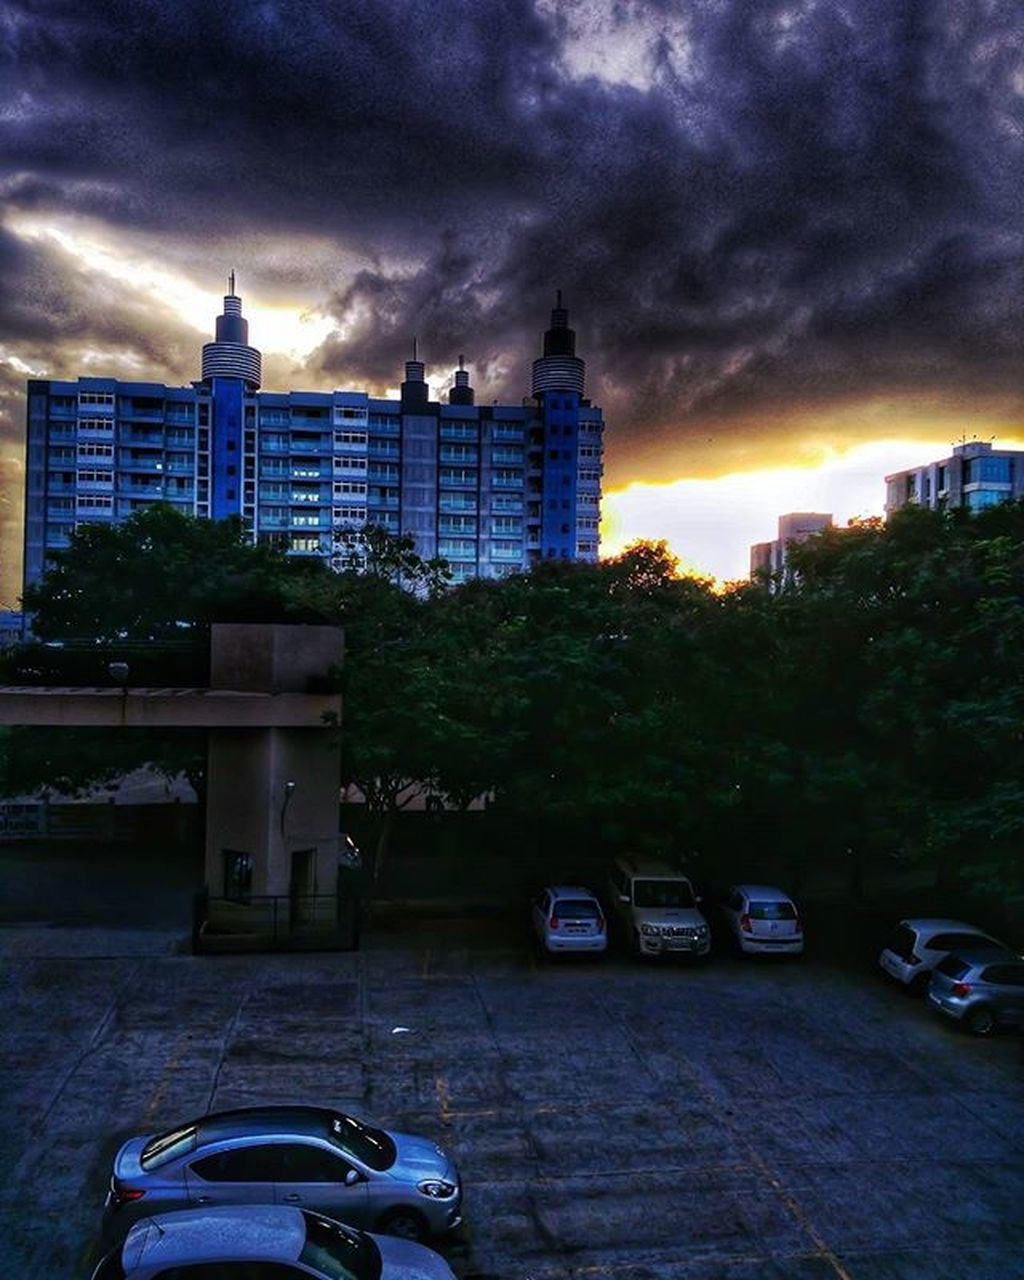 architecture, built structure, building exterior, cloud - sky, city, sky, skyscraper, modern, cityscape, outdoors, sunset, no people, illuminated, tree, urban skyline, day, nature